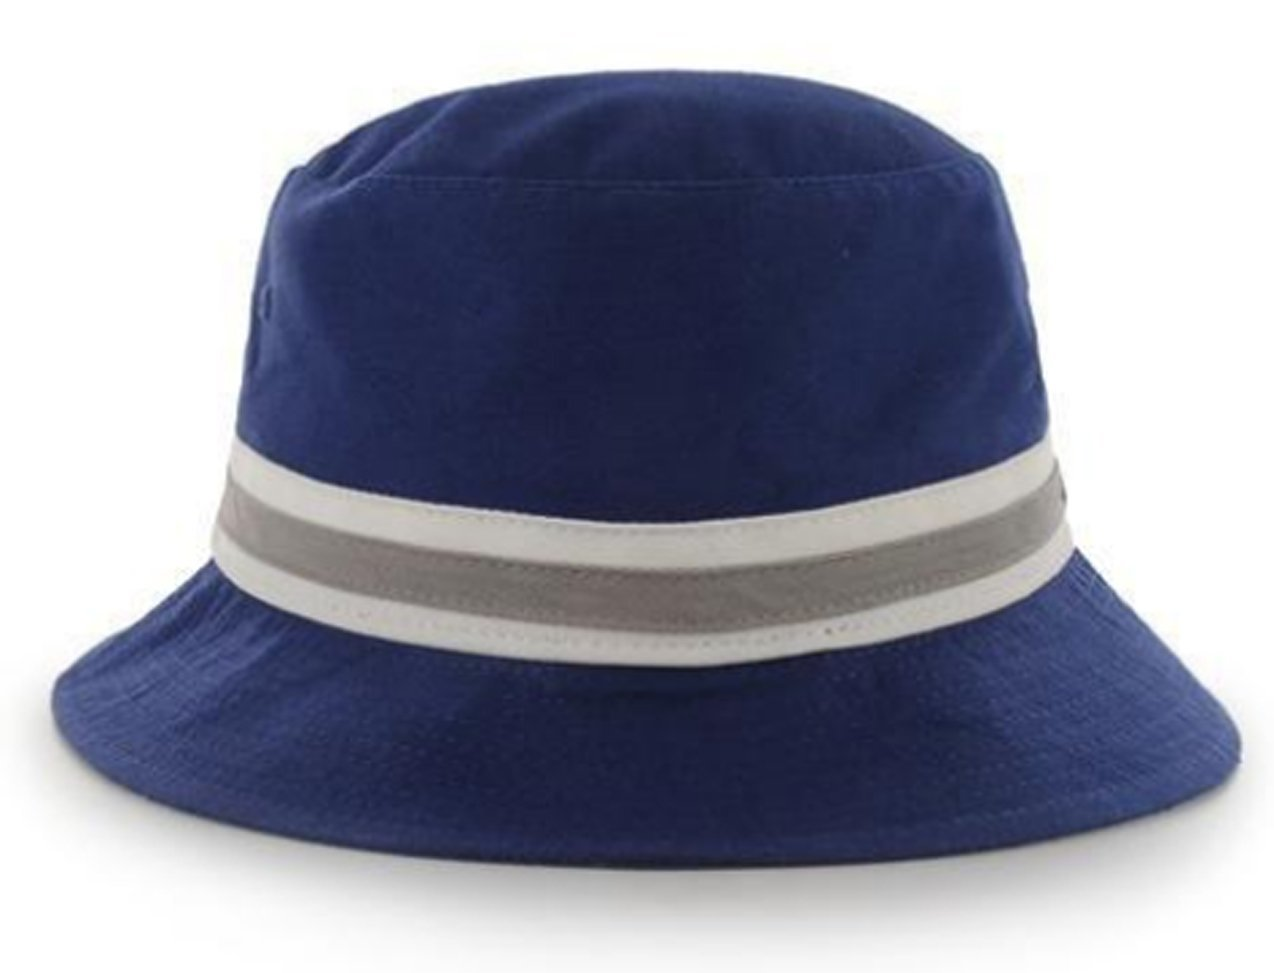 Amazon.com   Los Angeles Dodgers Stapleton Bucket Hat   Sports   Outdoors 0edbdc9b731